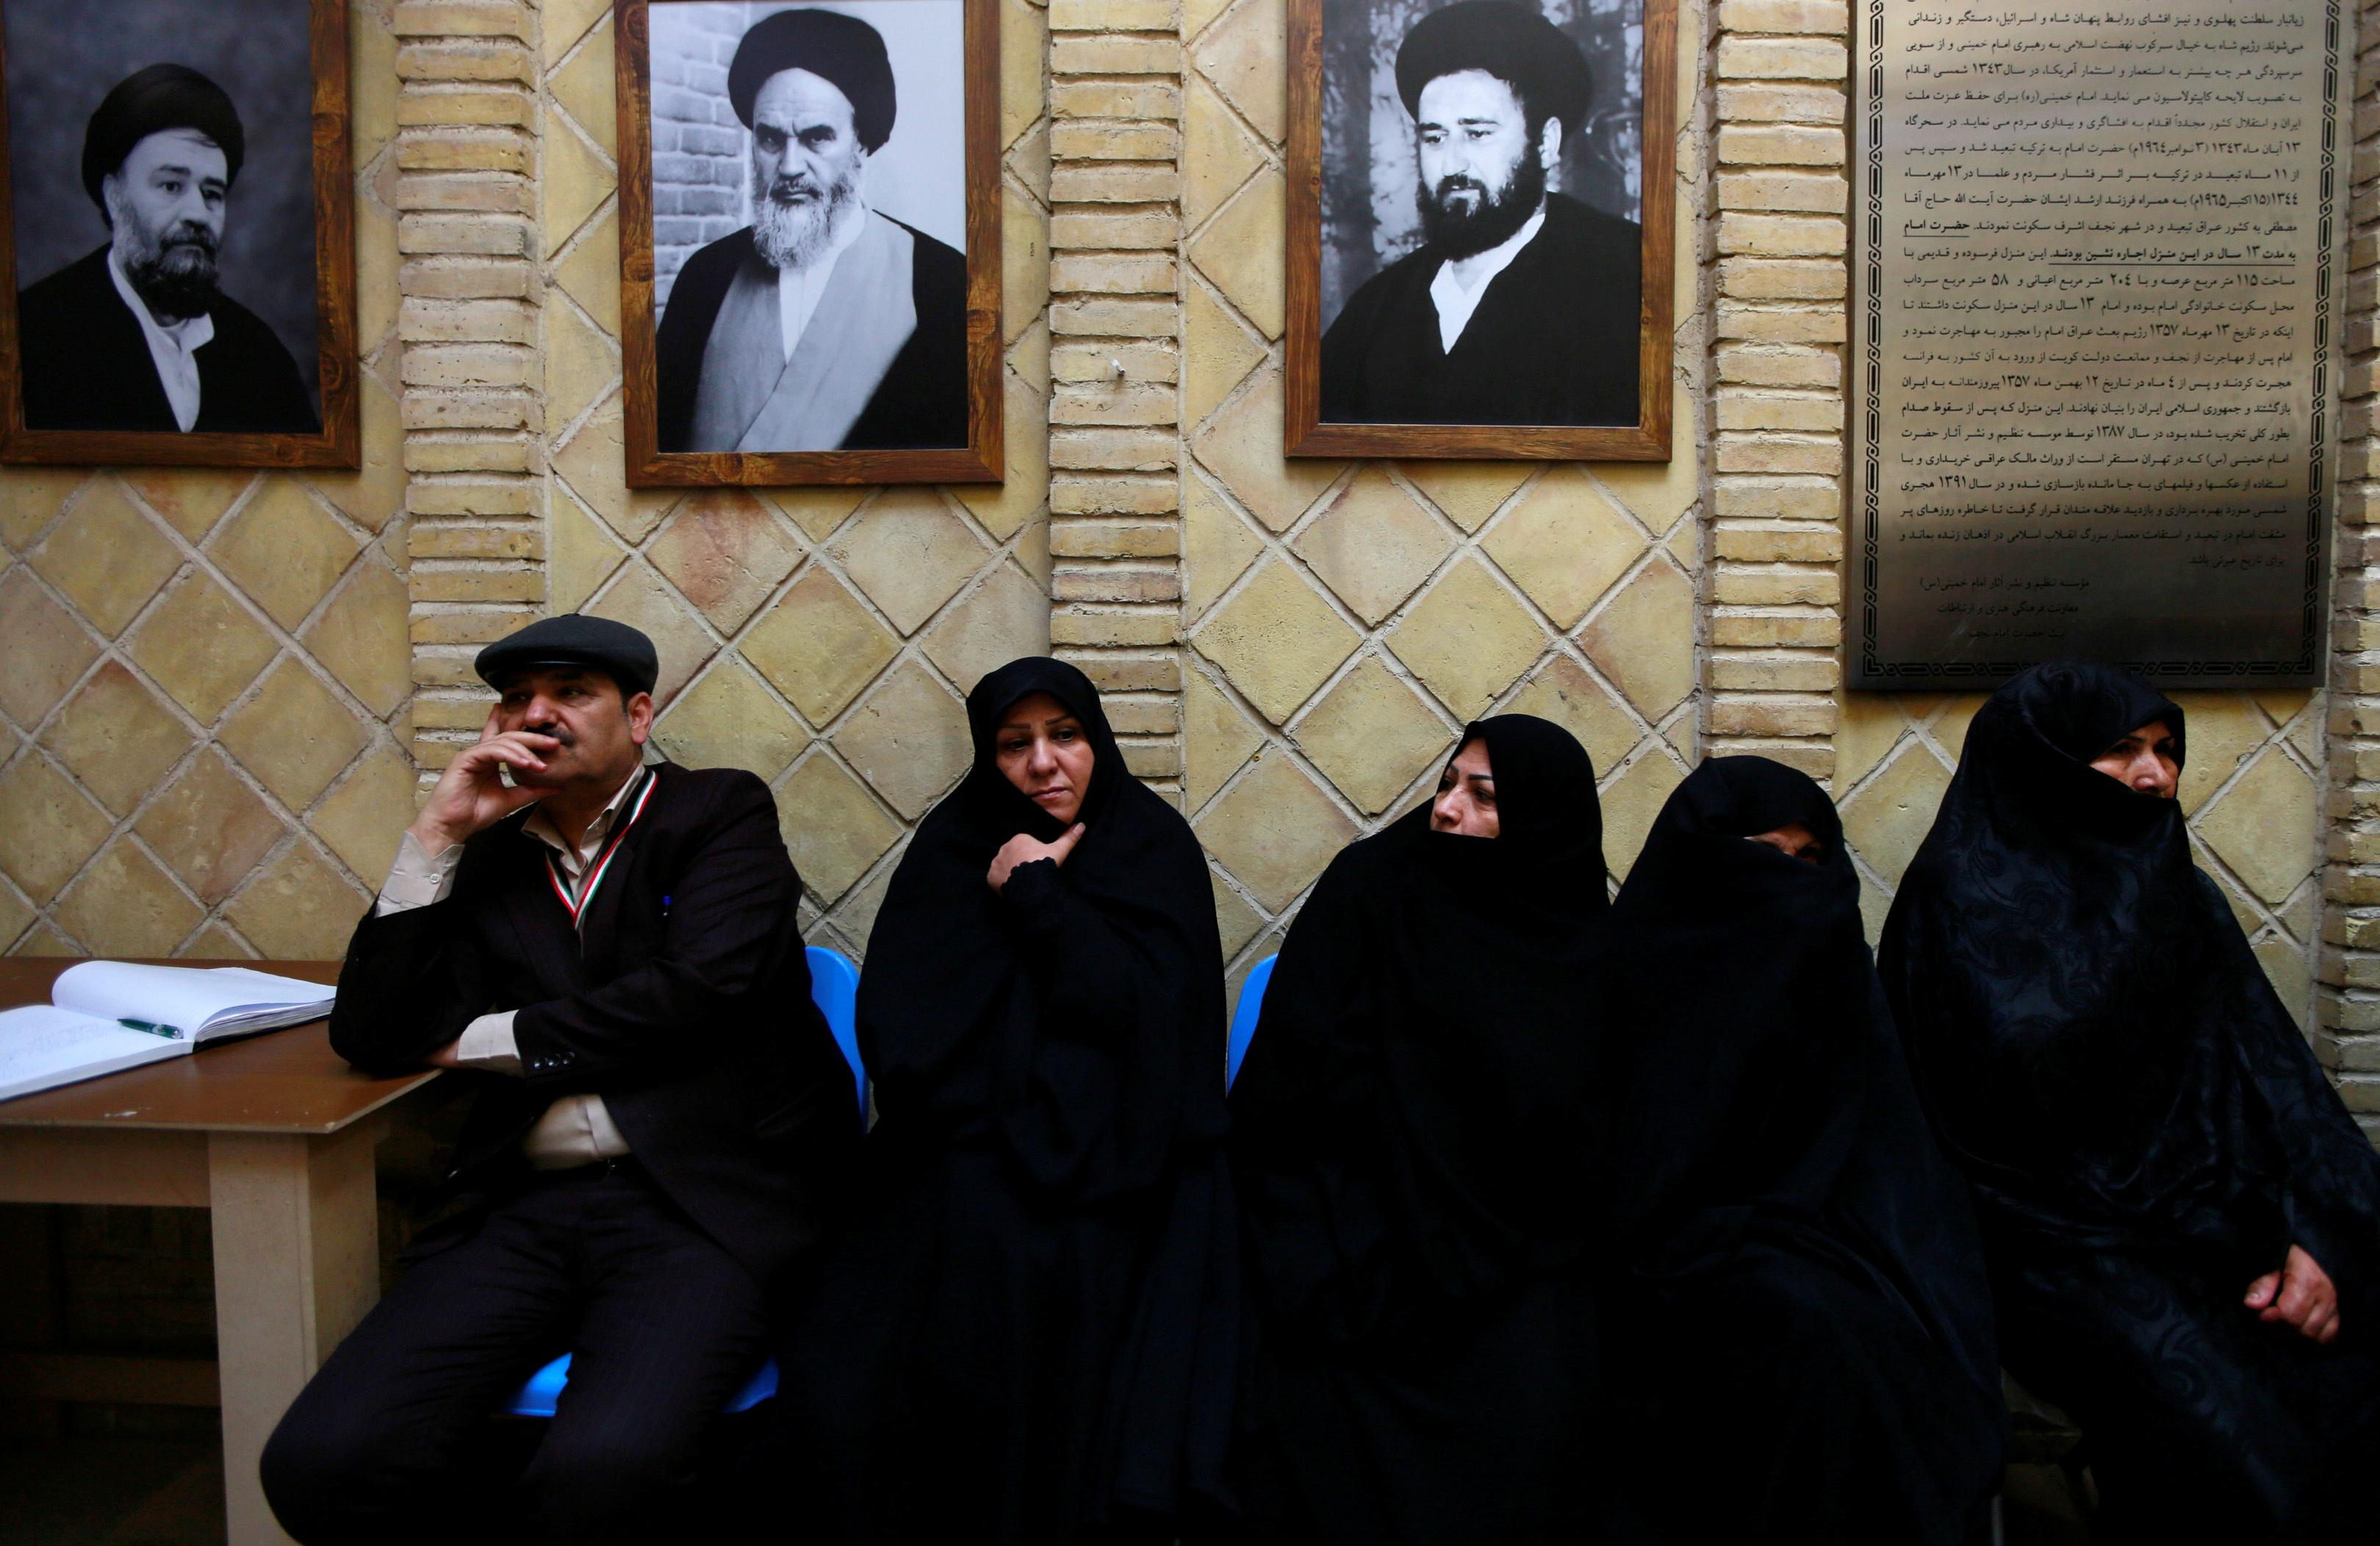 At Khomeini's Iraqi place of exile, Iranians remember revolution's leader